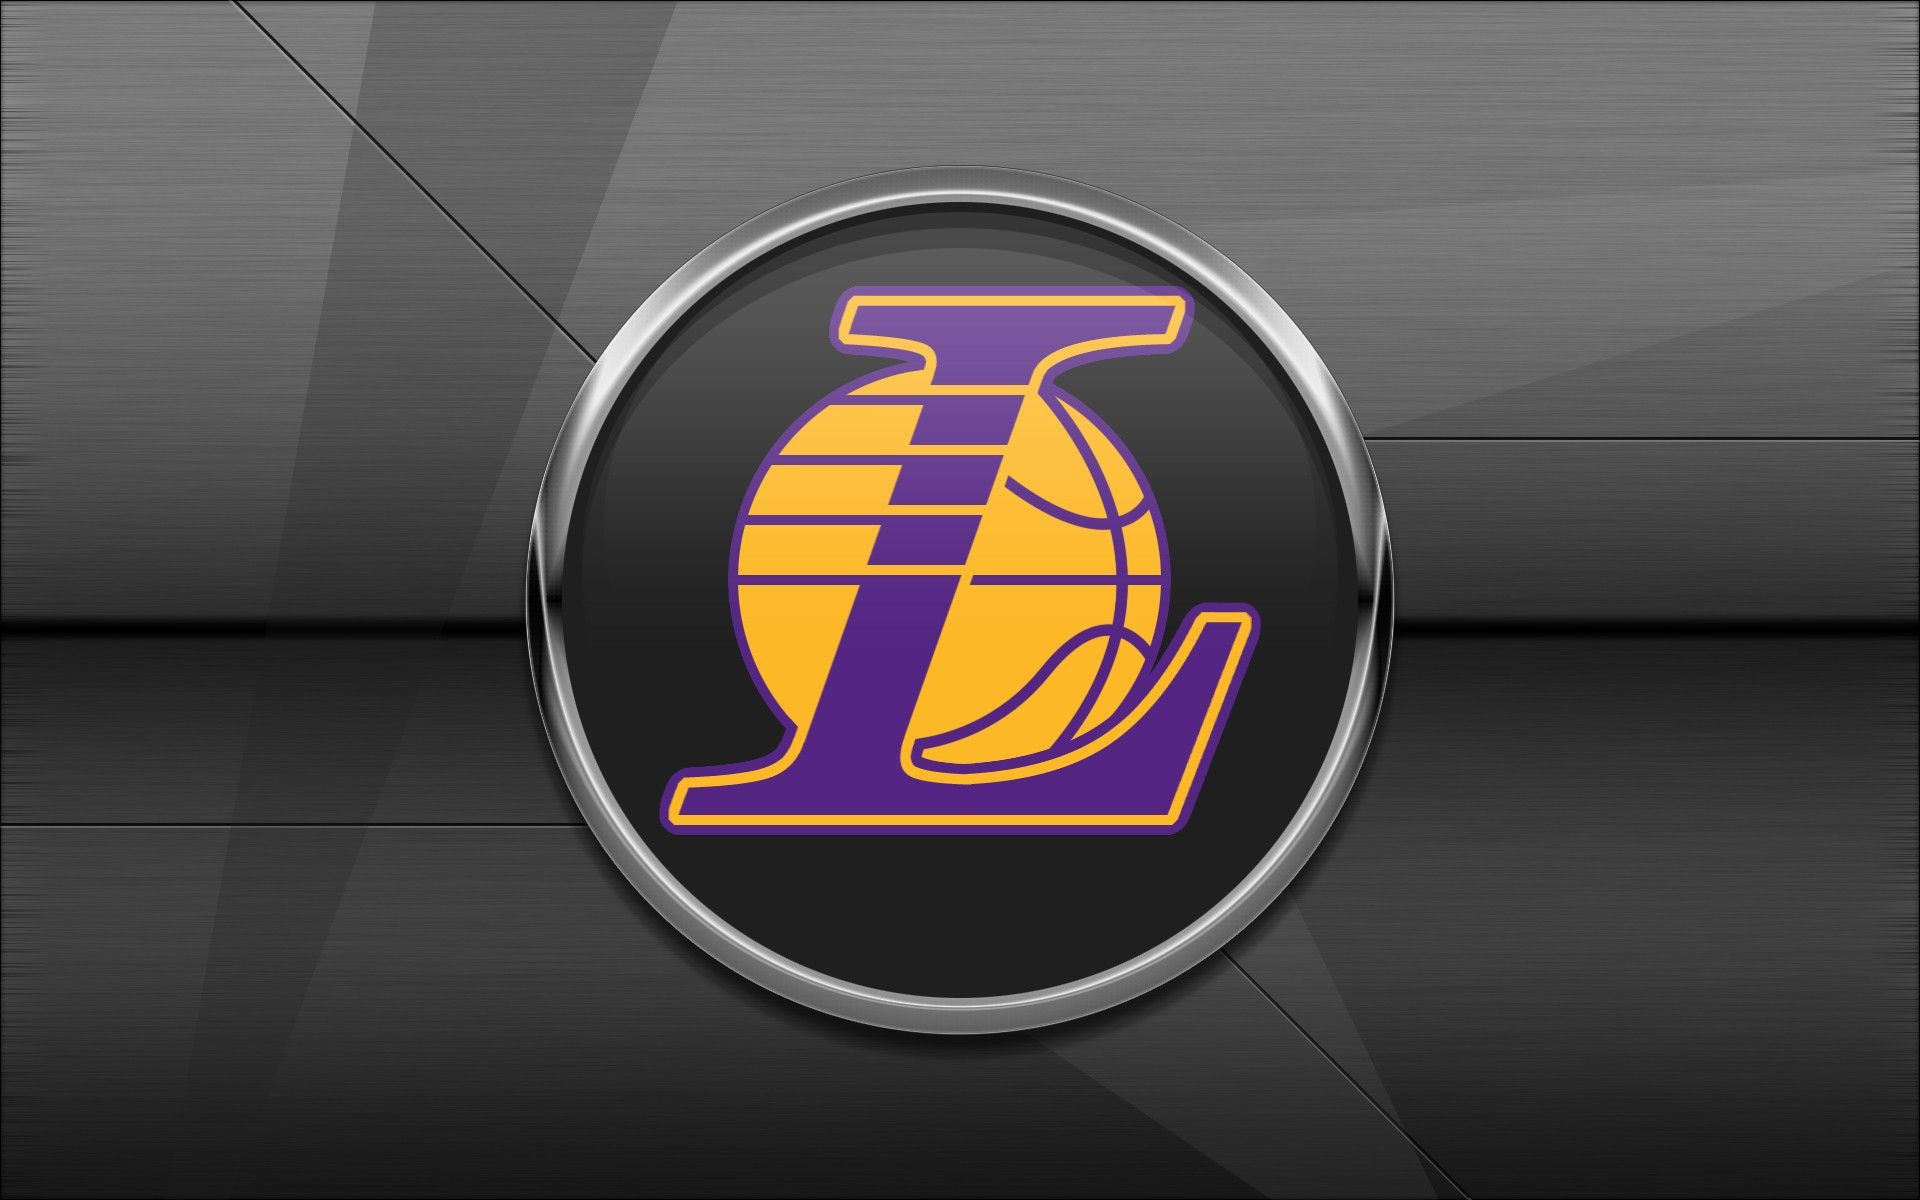 1920x1080 los angeles lakers 2017 nba basketball hardwood logo wallpaper free pc desktop computer hd ... Download